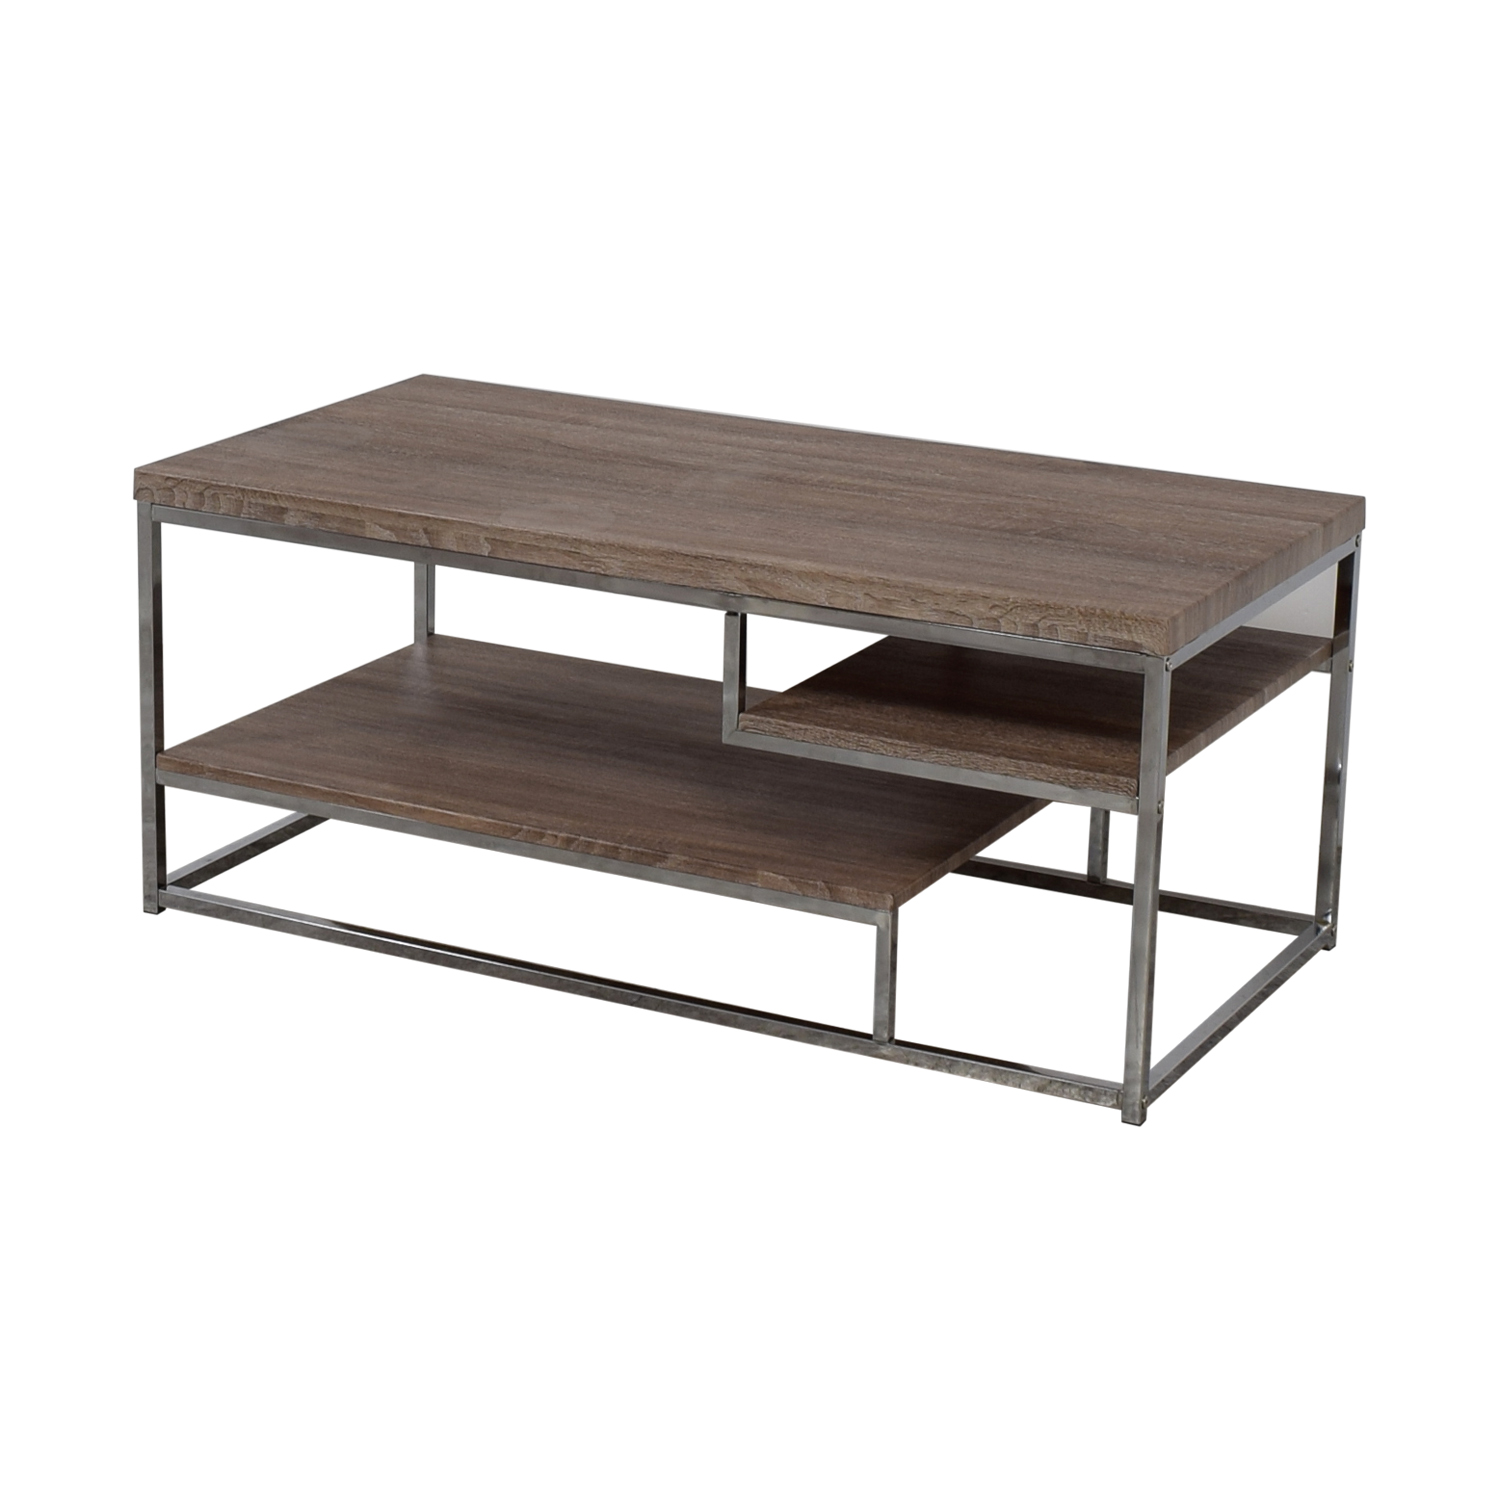 Rustic Wood And Chrome Coffee Table Or Media Unit For